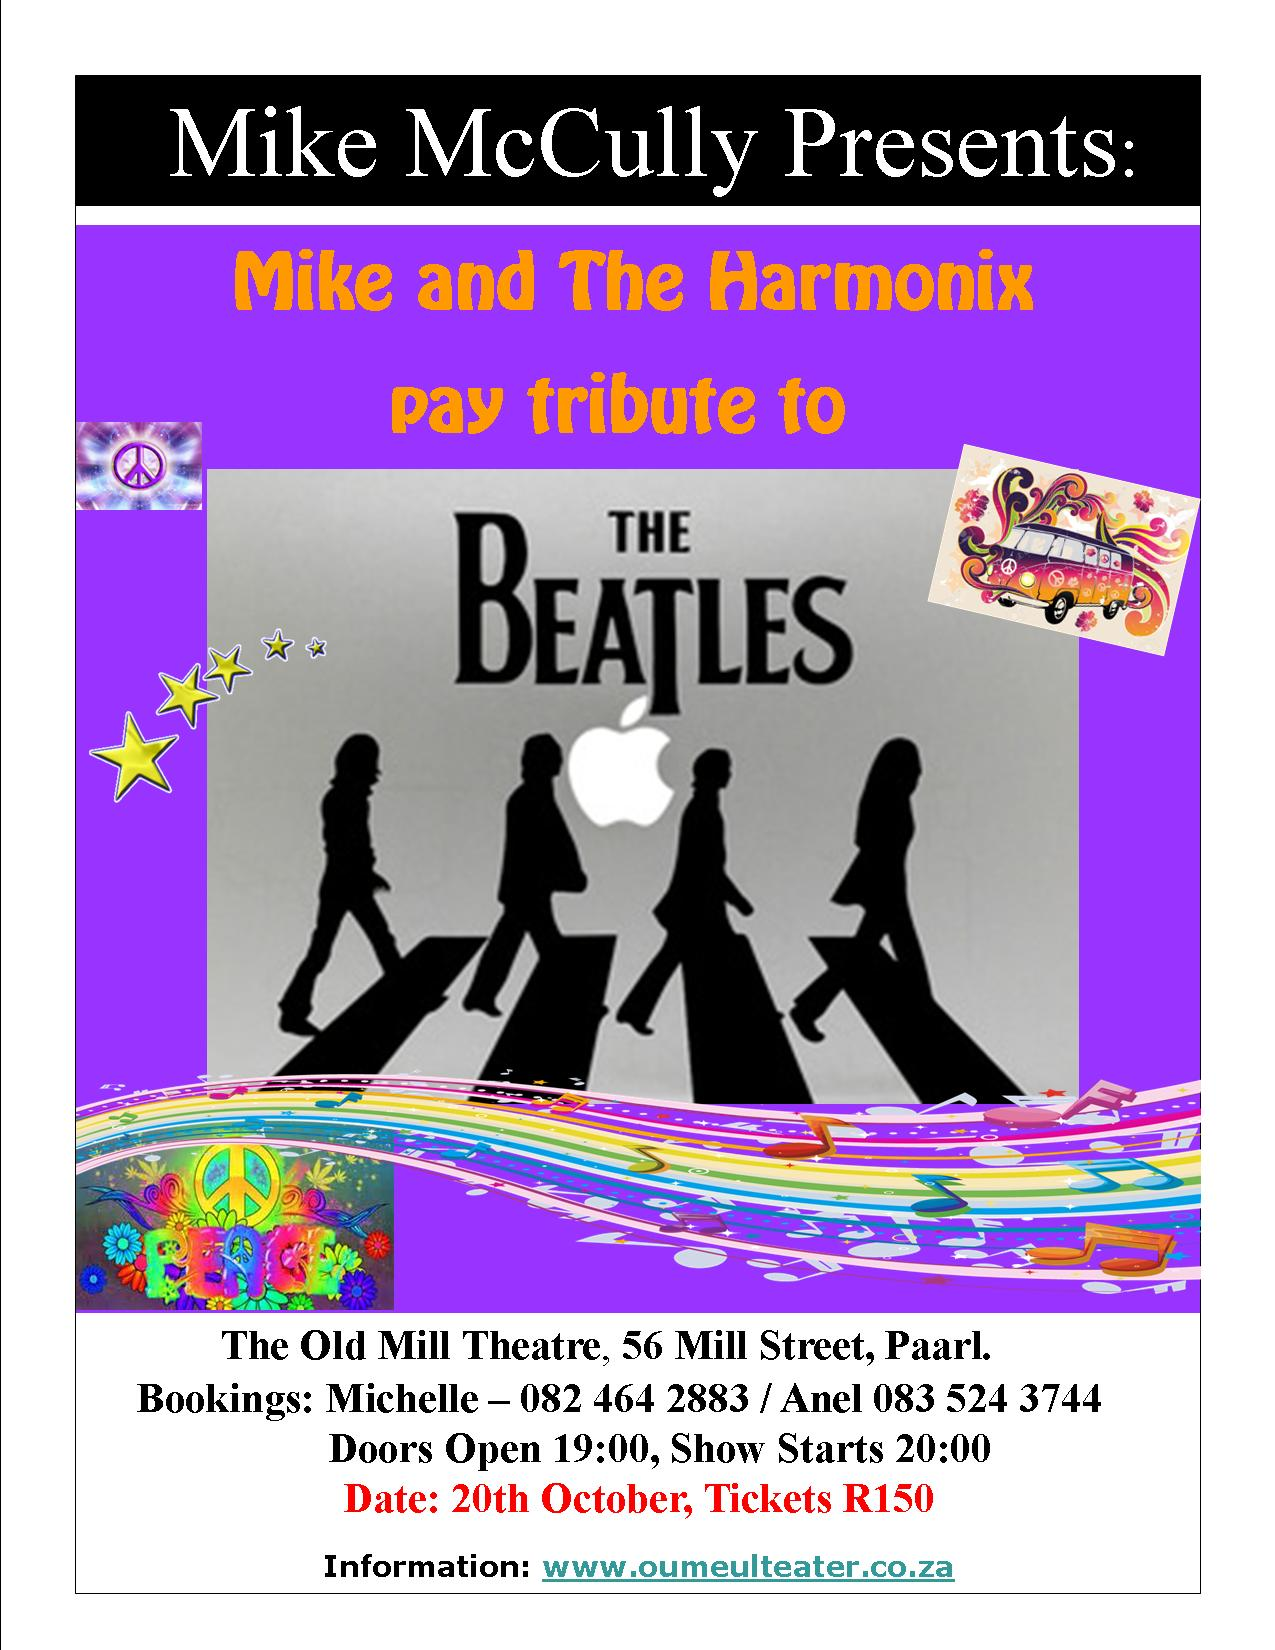 Mike McCullagh & The Harmonix pay tribute to The Beatles